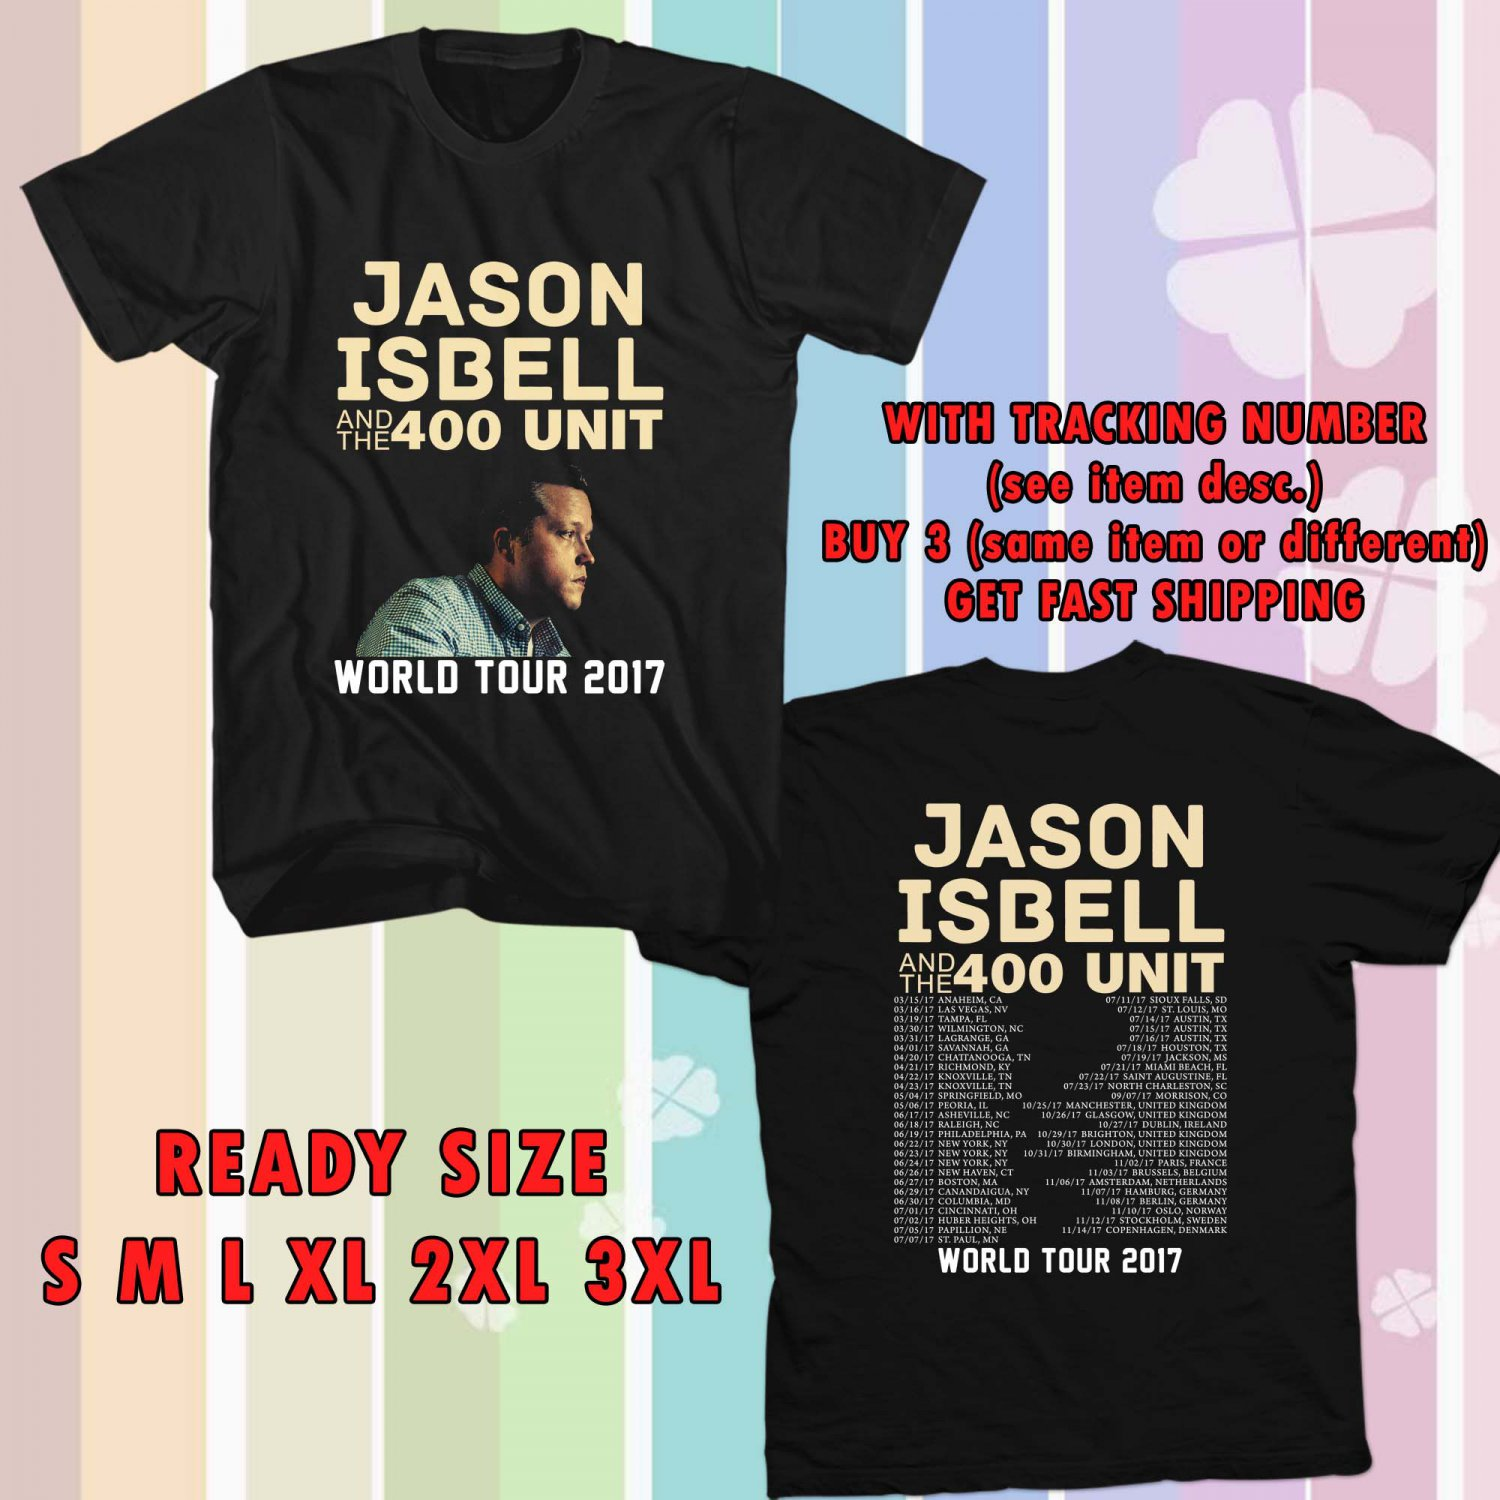 WOW JASON ISBELL TOUR 2017 BLACK TEE S-3XL ASTR 339